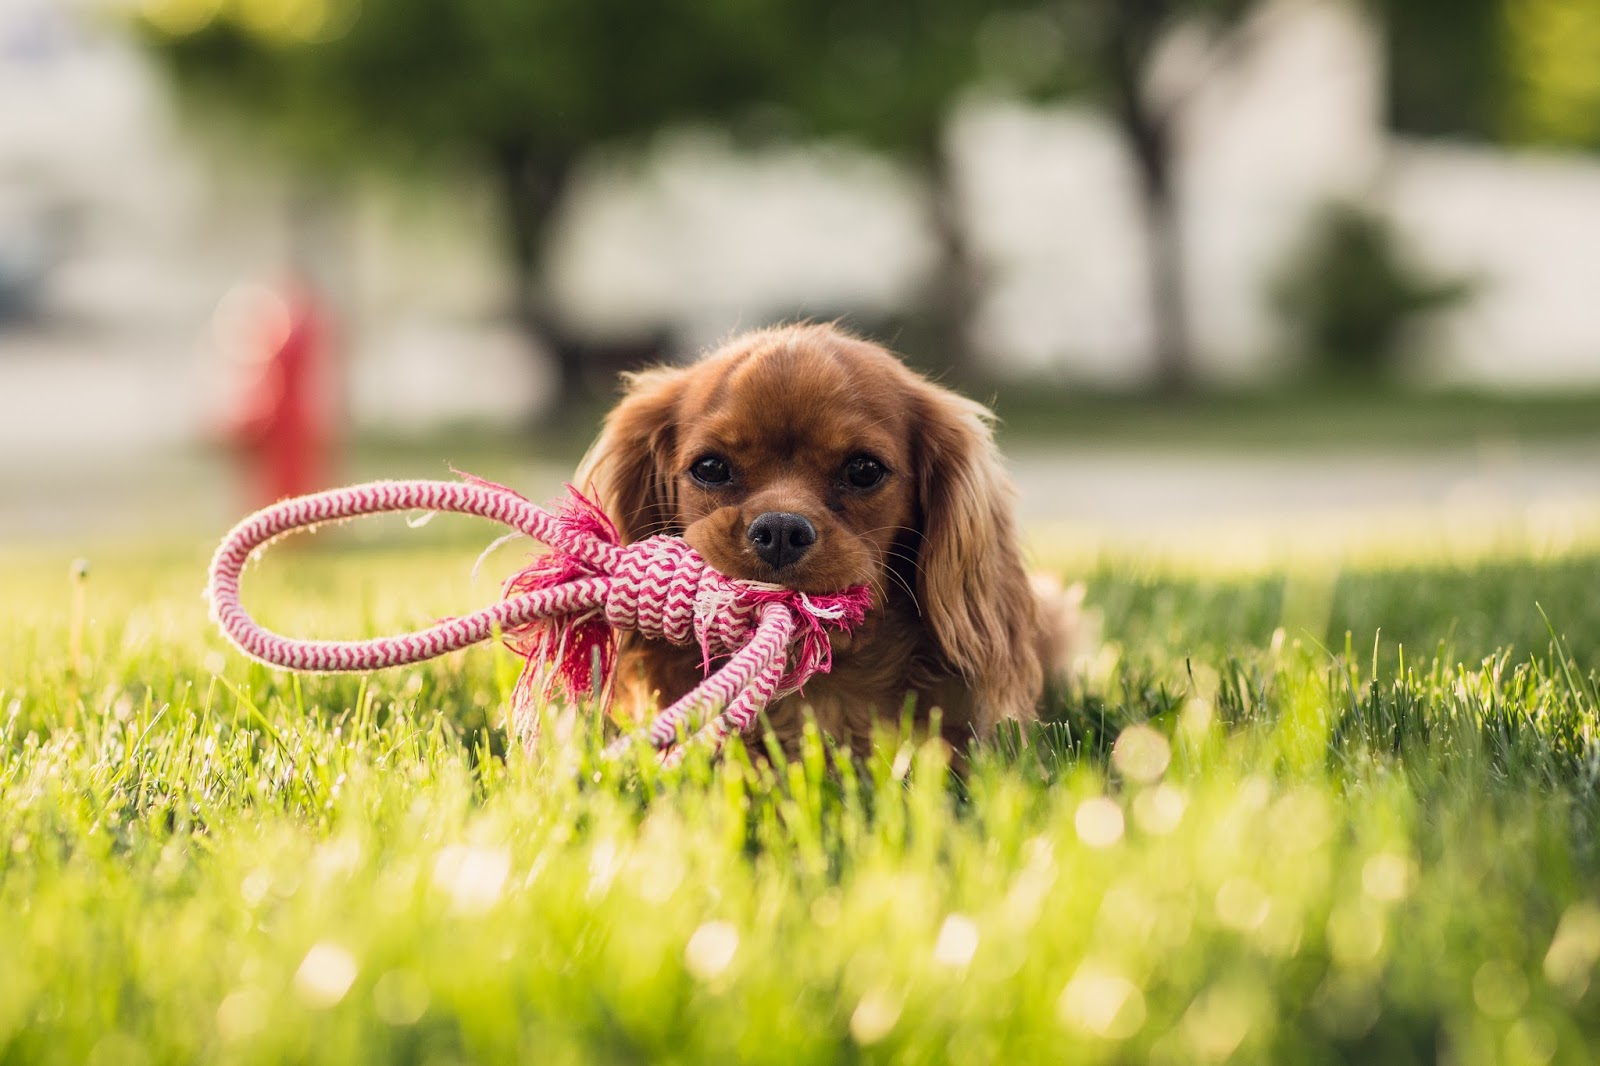 Puppy on the grass with a rope in his mouth